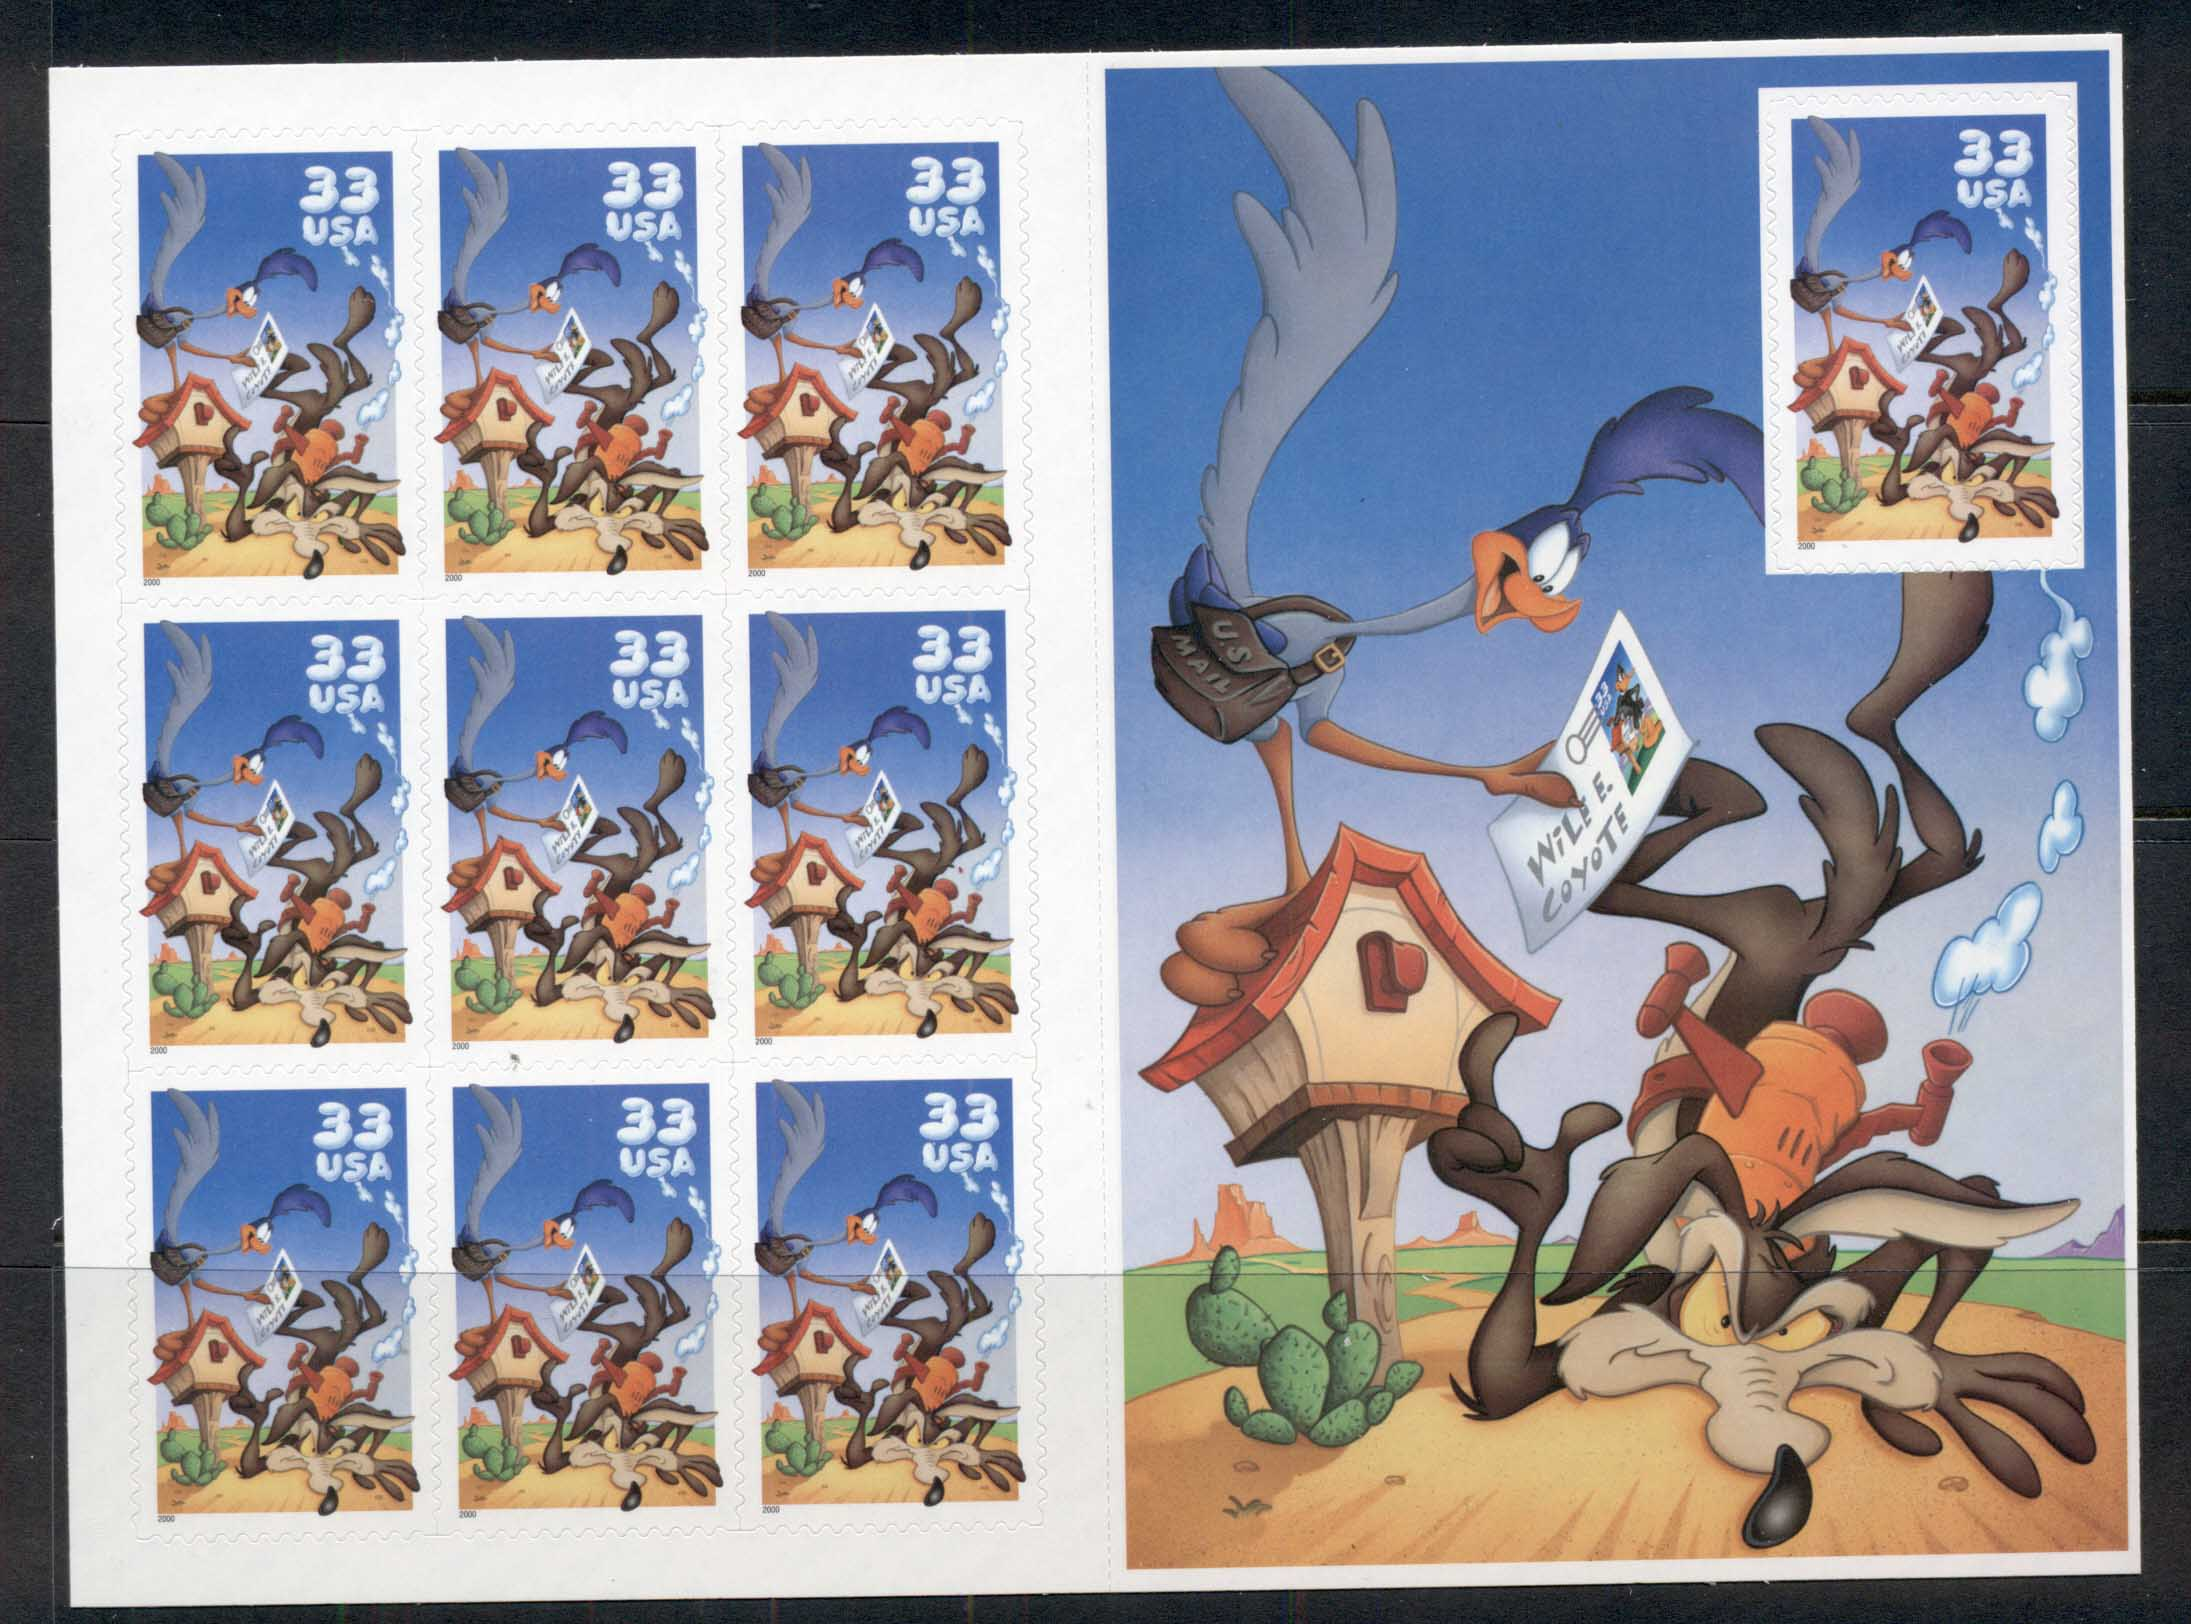 USA 2000 Sc#3391 Road Runner & Wile E Coyote pane 10 MUH